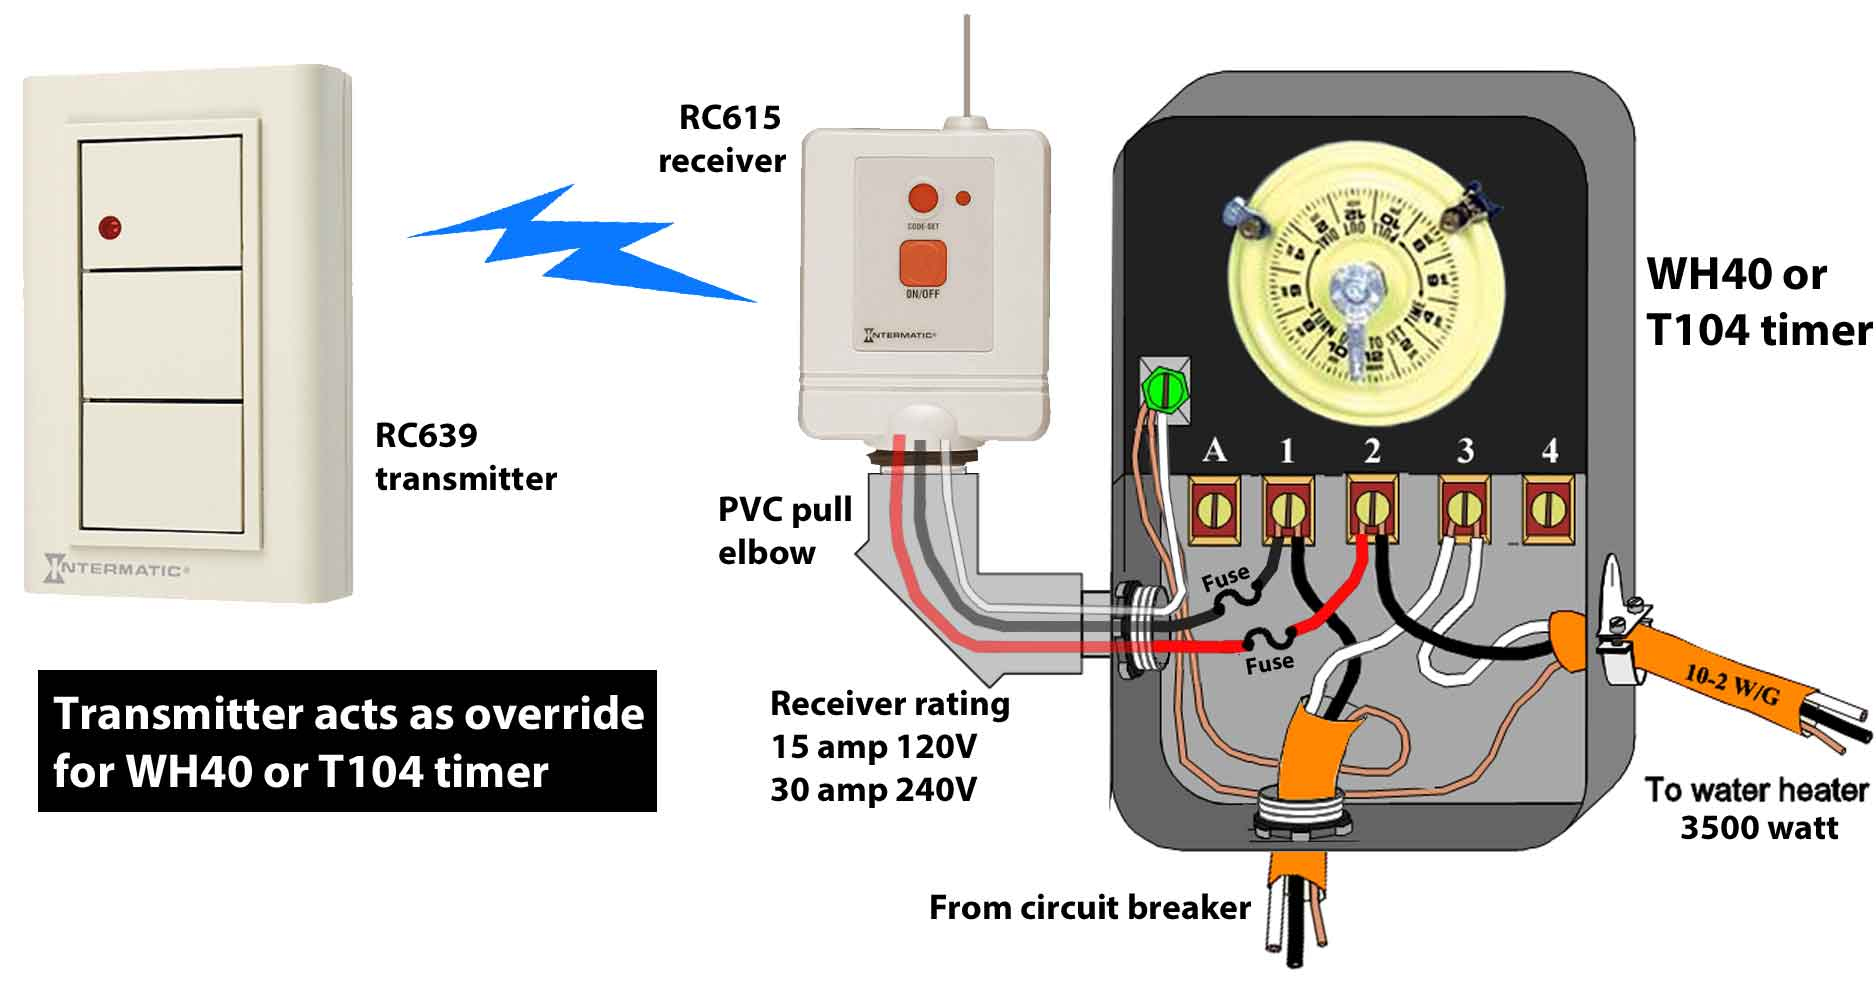 intermatic water heater timer wiring diagram spotlight holden colorado how to wire eh40 eh10 wh40 wh21